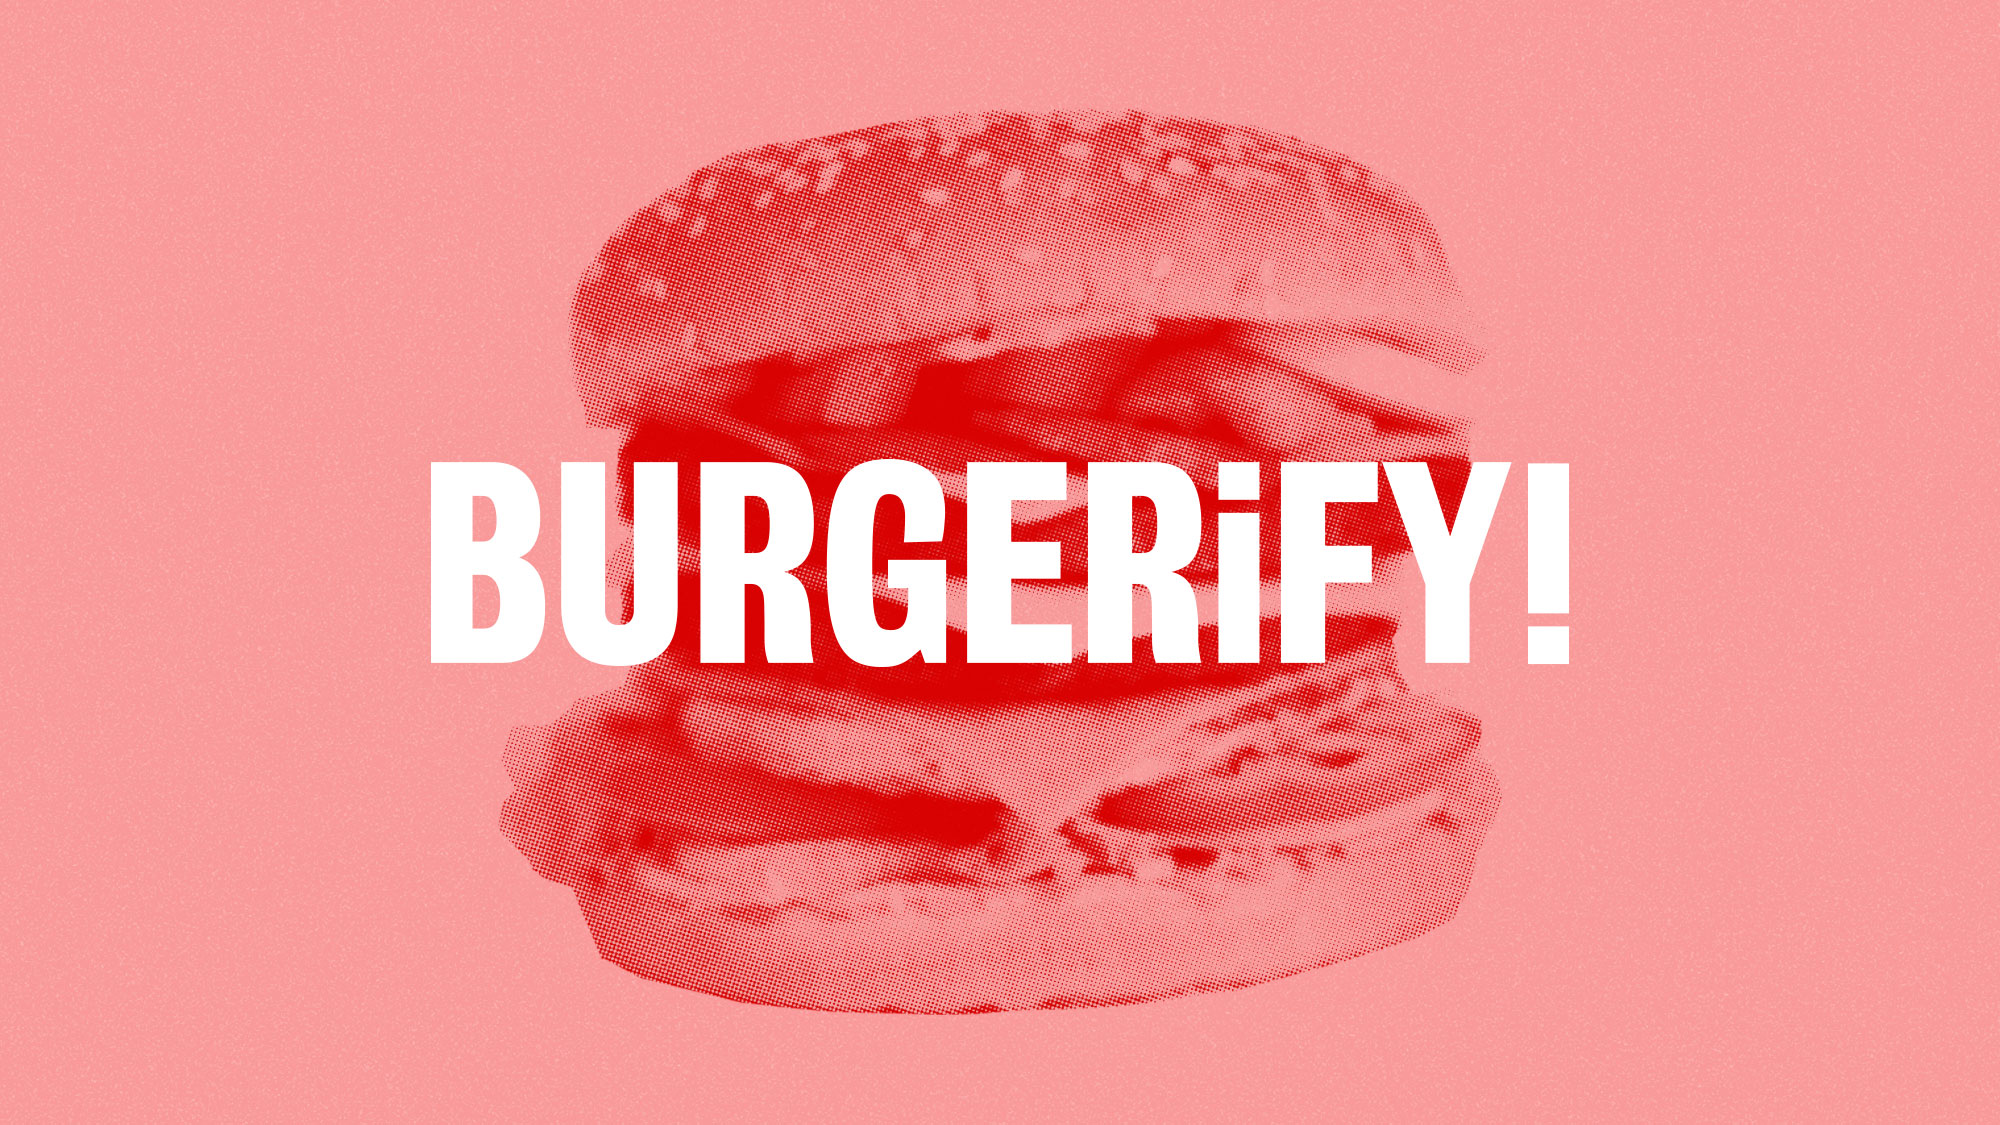 Cover image: Burgerify!